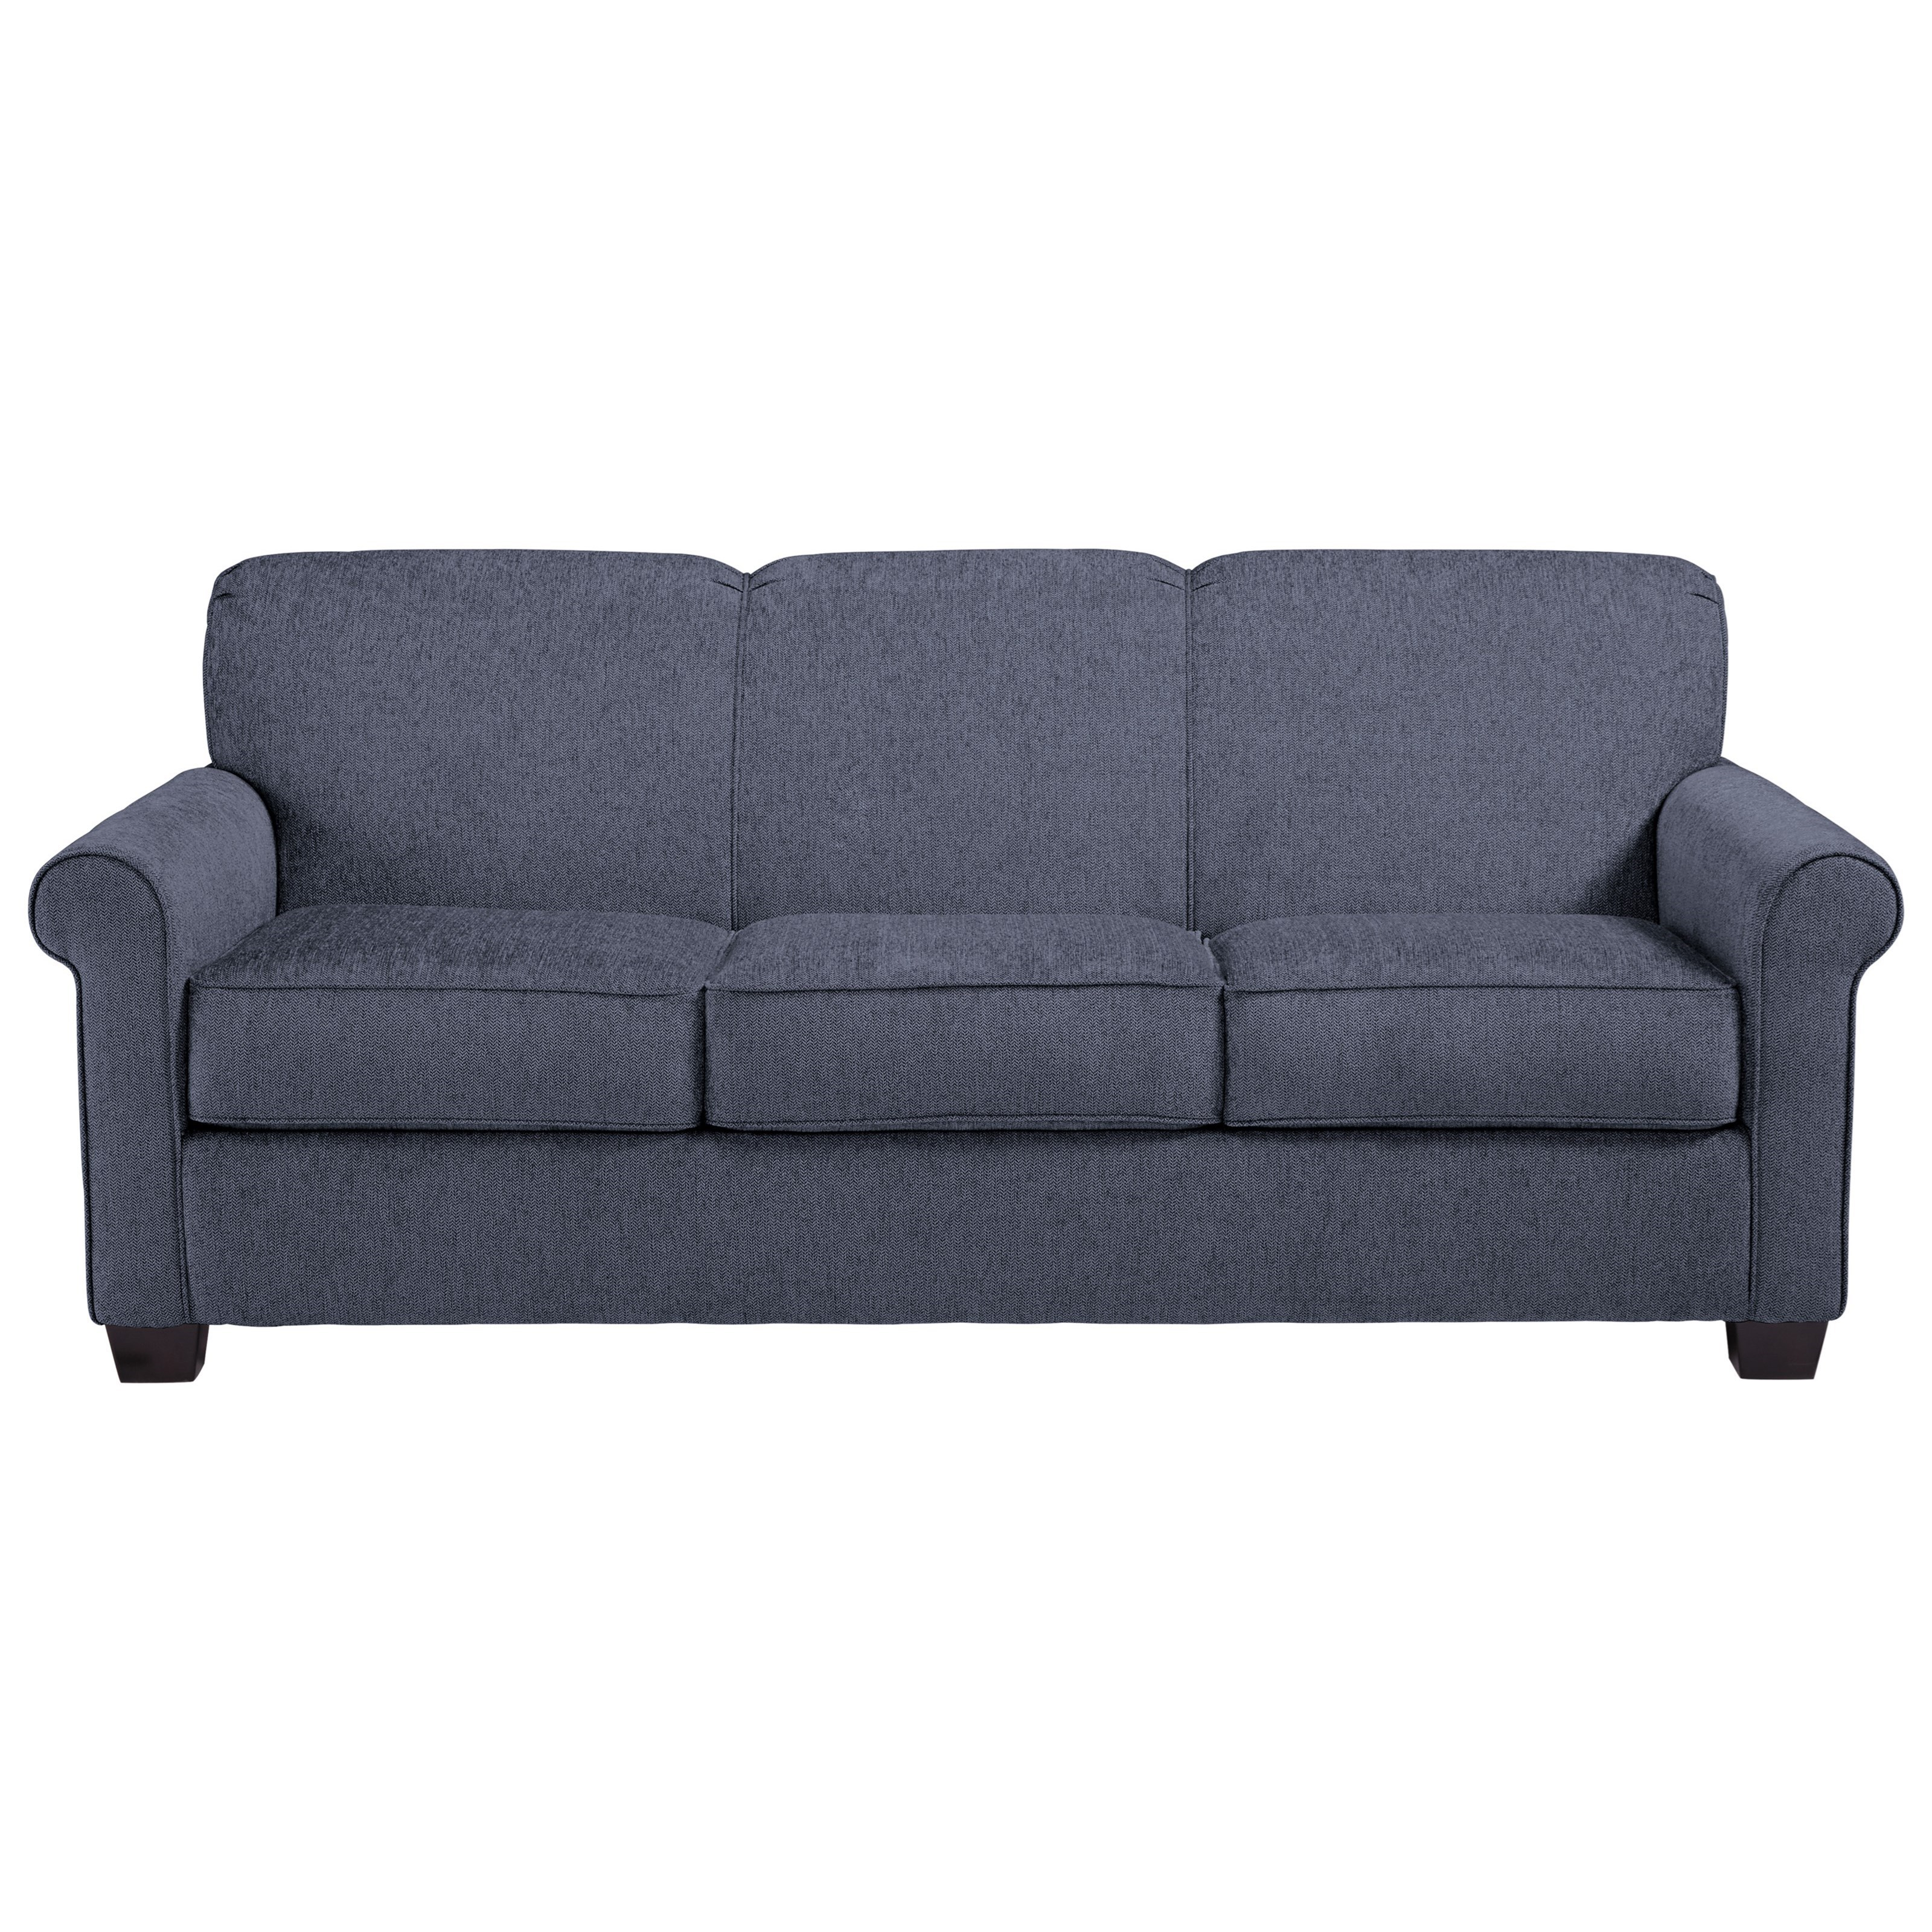 Signature Design by Ashley Cansler Queen Sofa Sleeper - Item Number: 7380839